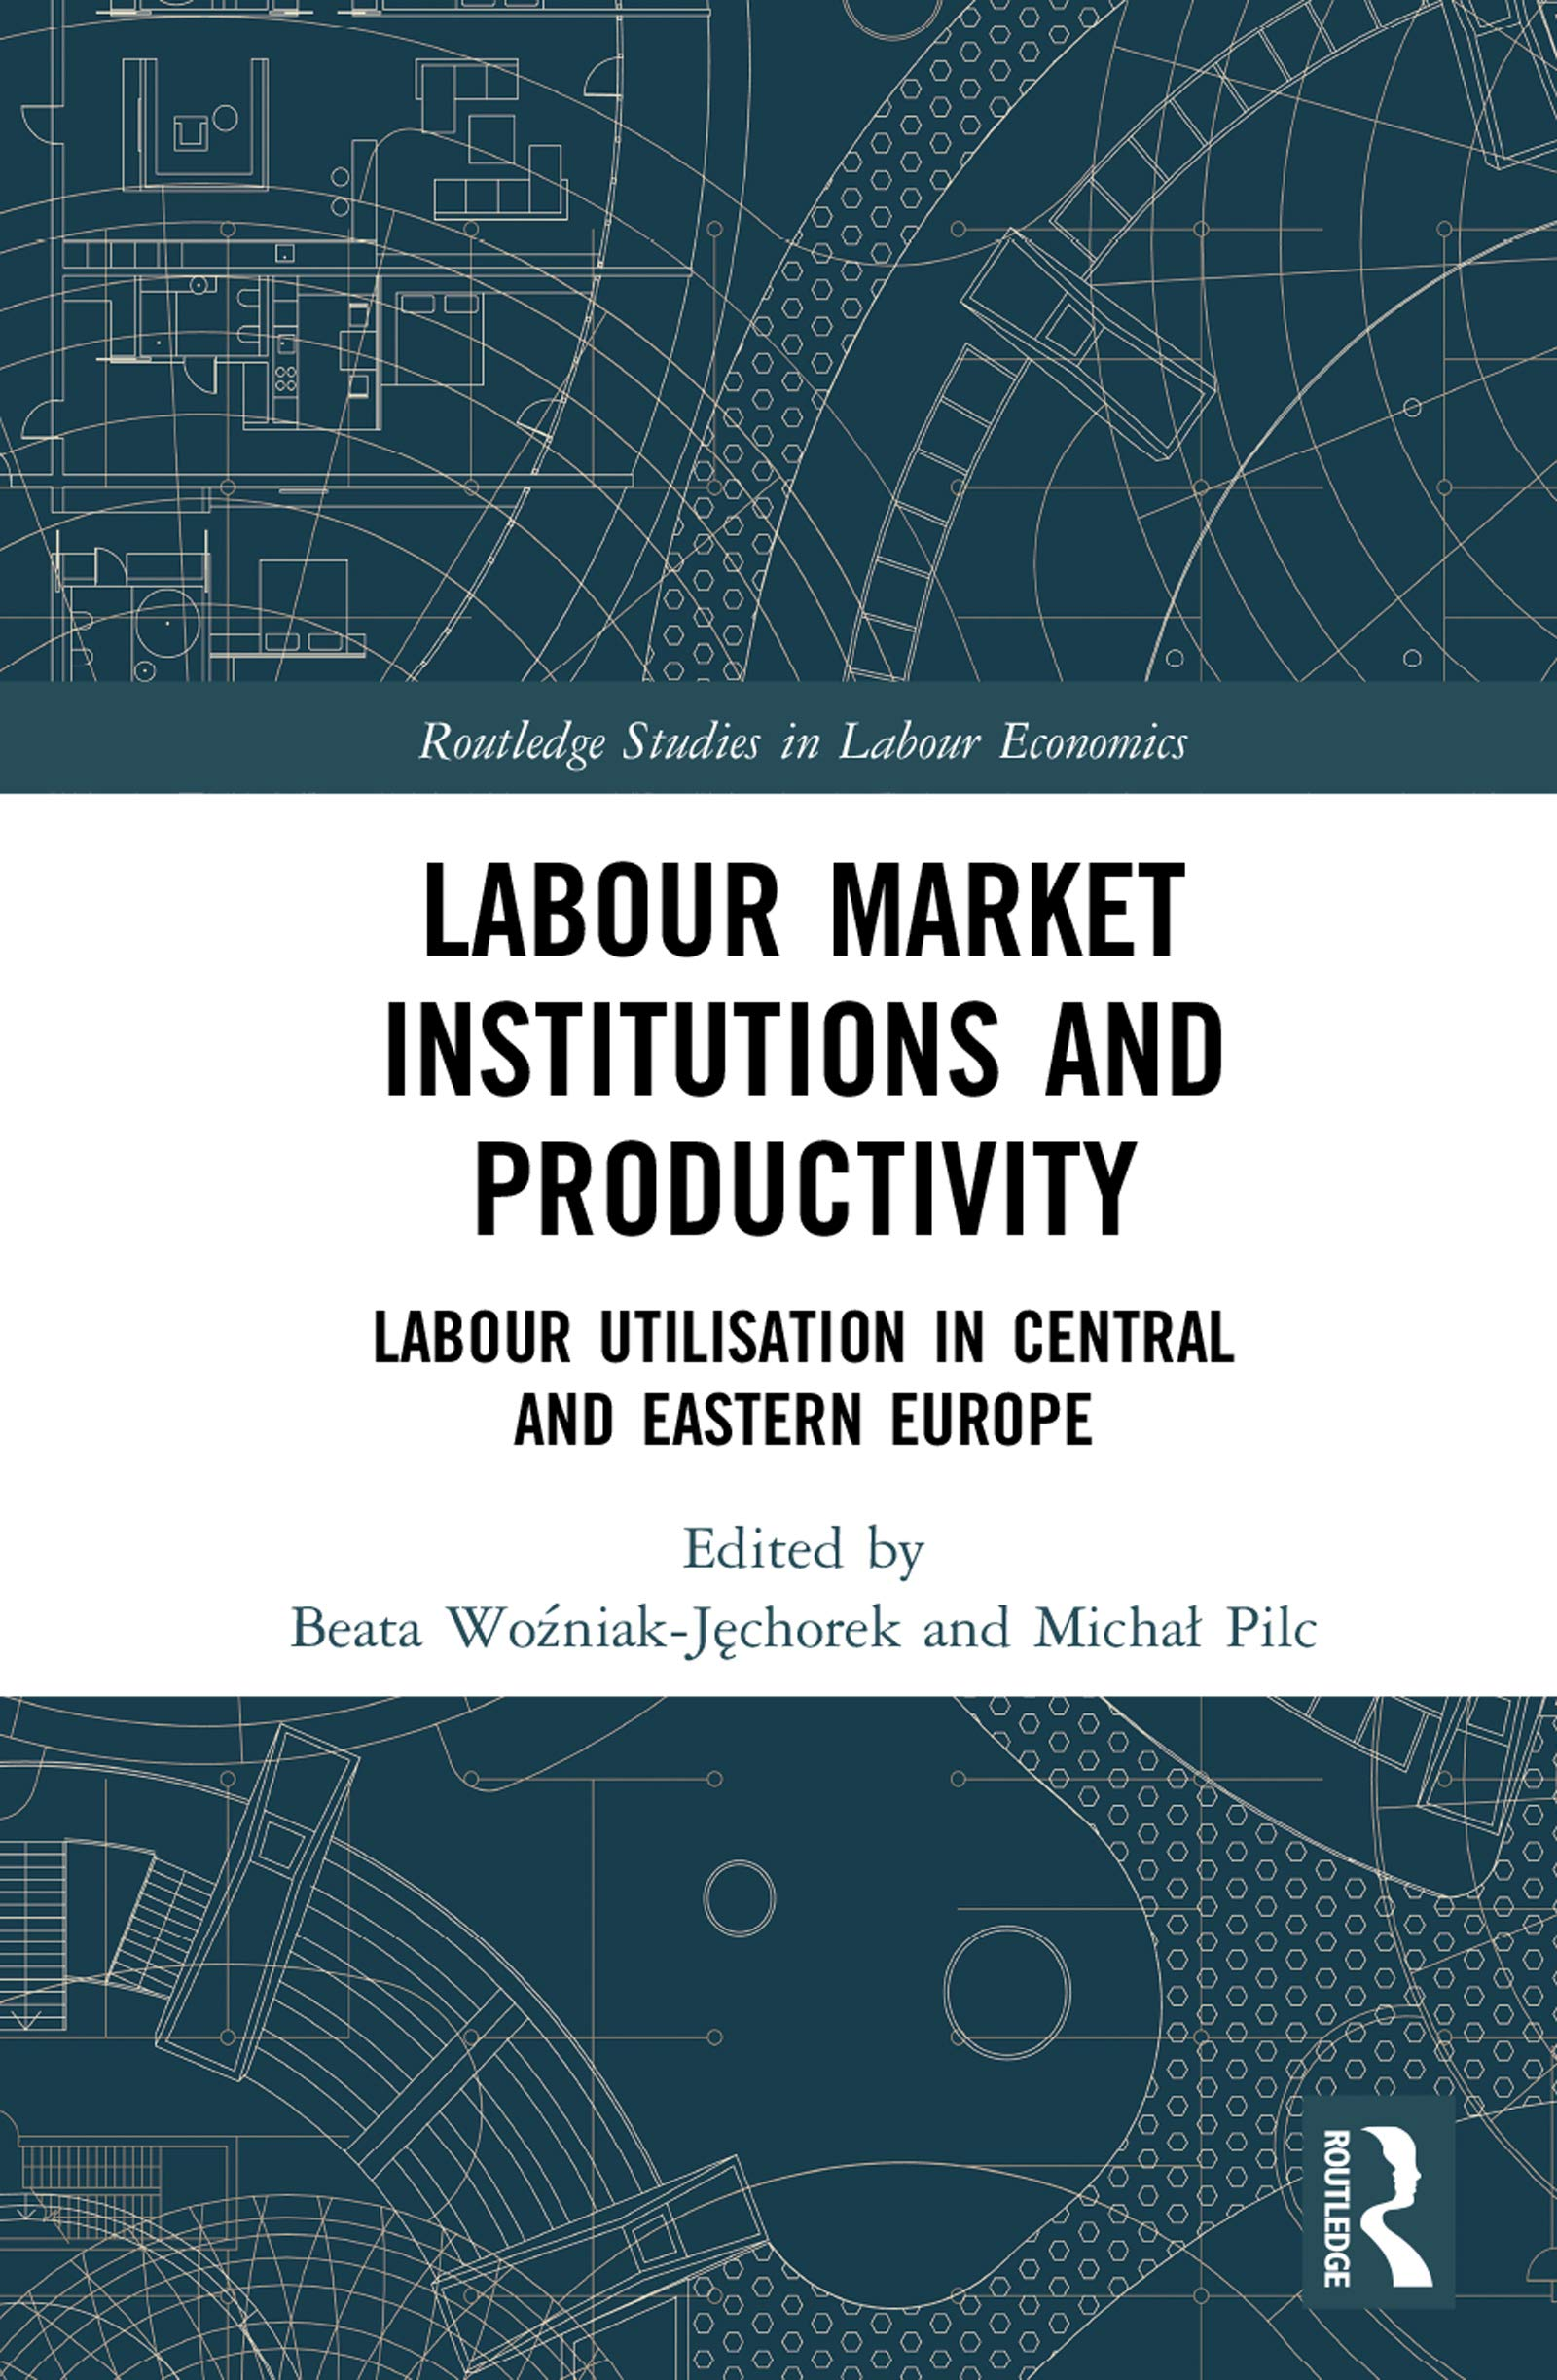 Labour Market Institutions and Productivity: Labour Utilisation in Central and Eastern Europe (Routledge Studies in Labour Economics)